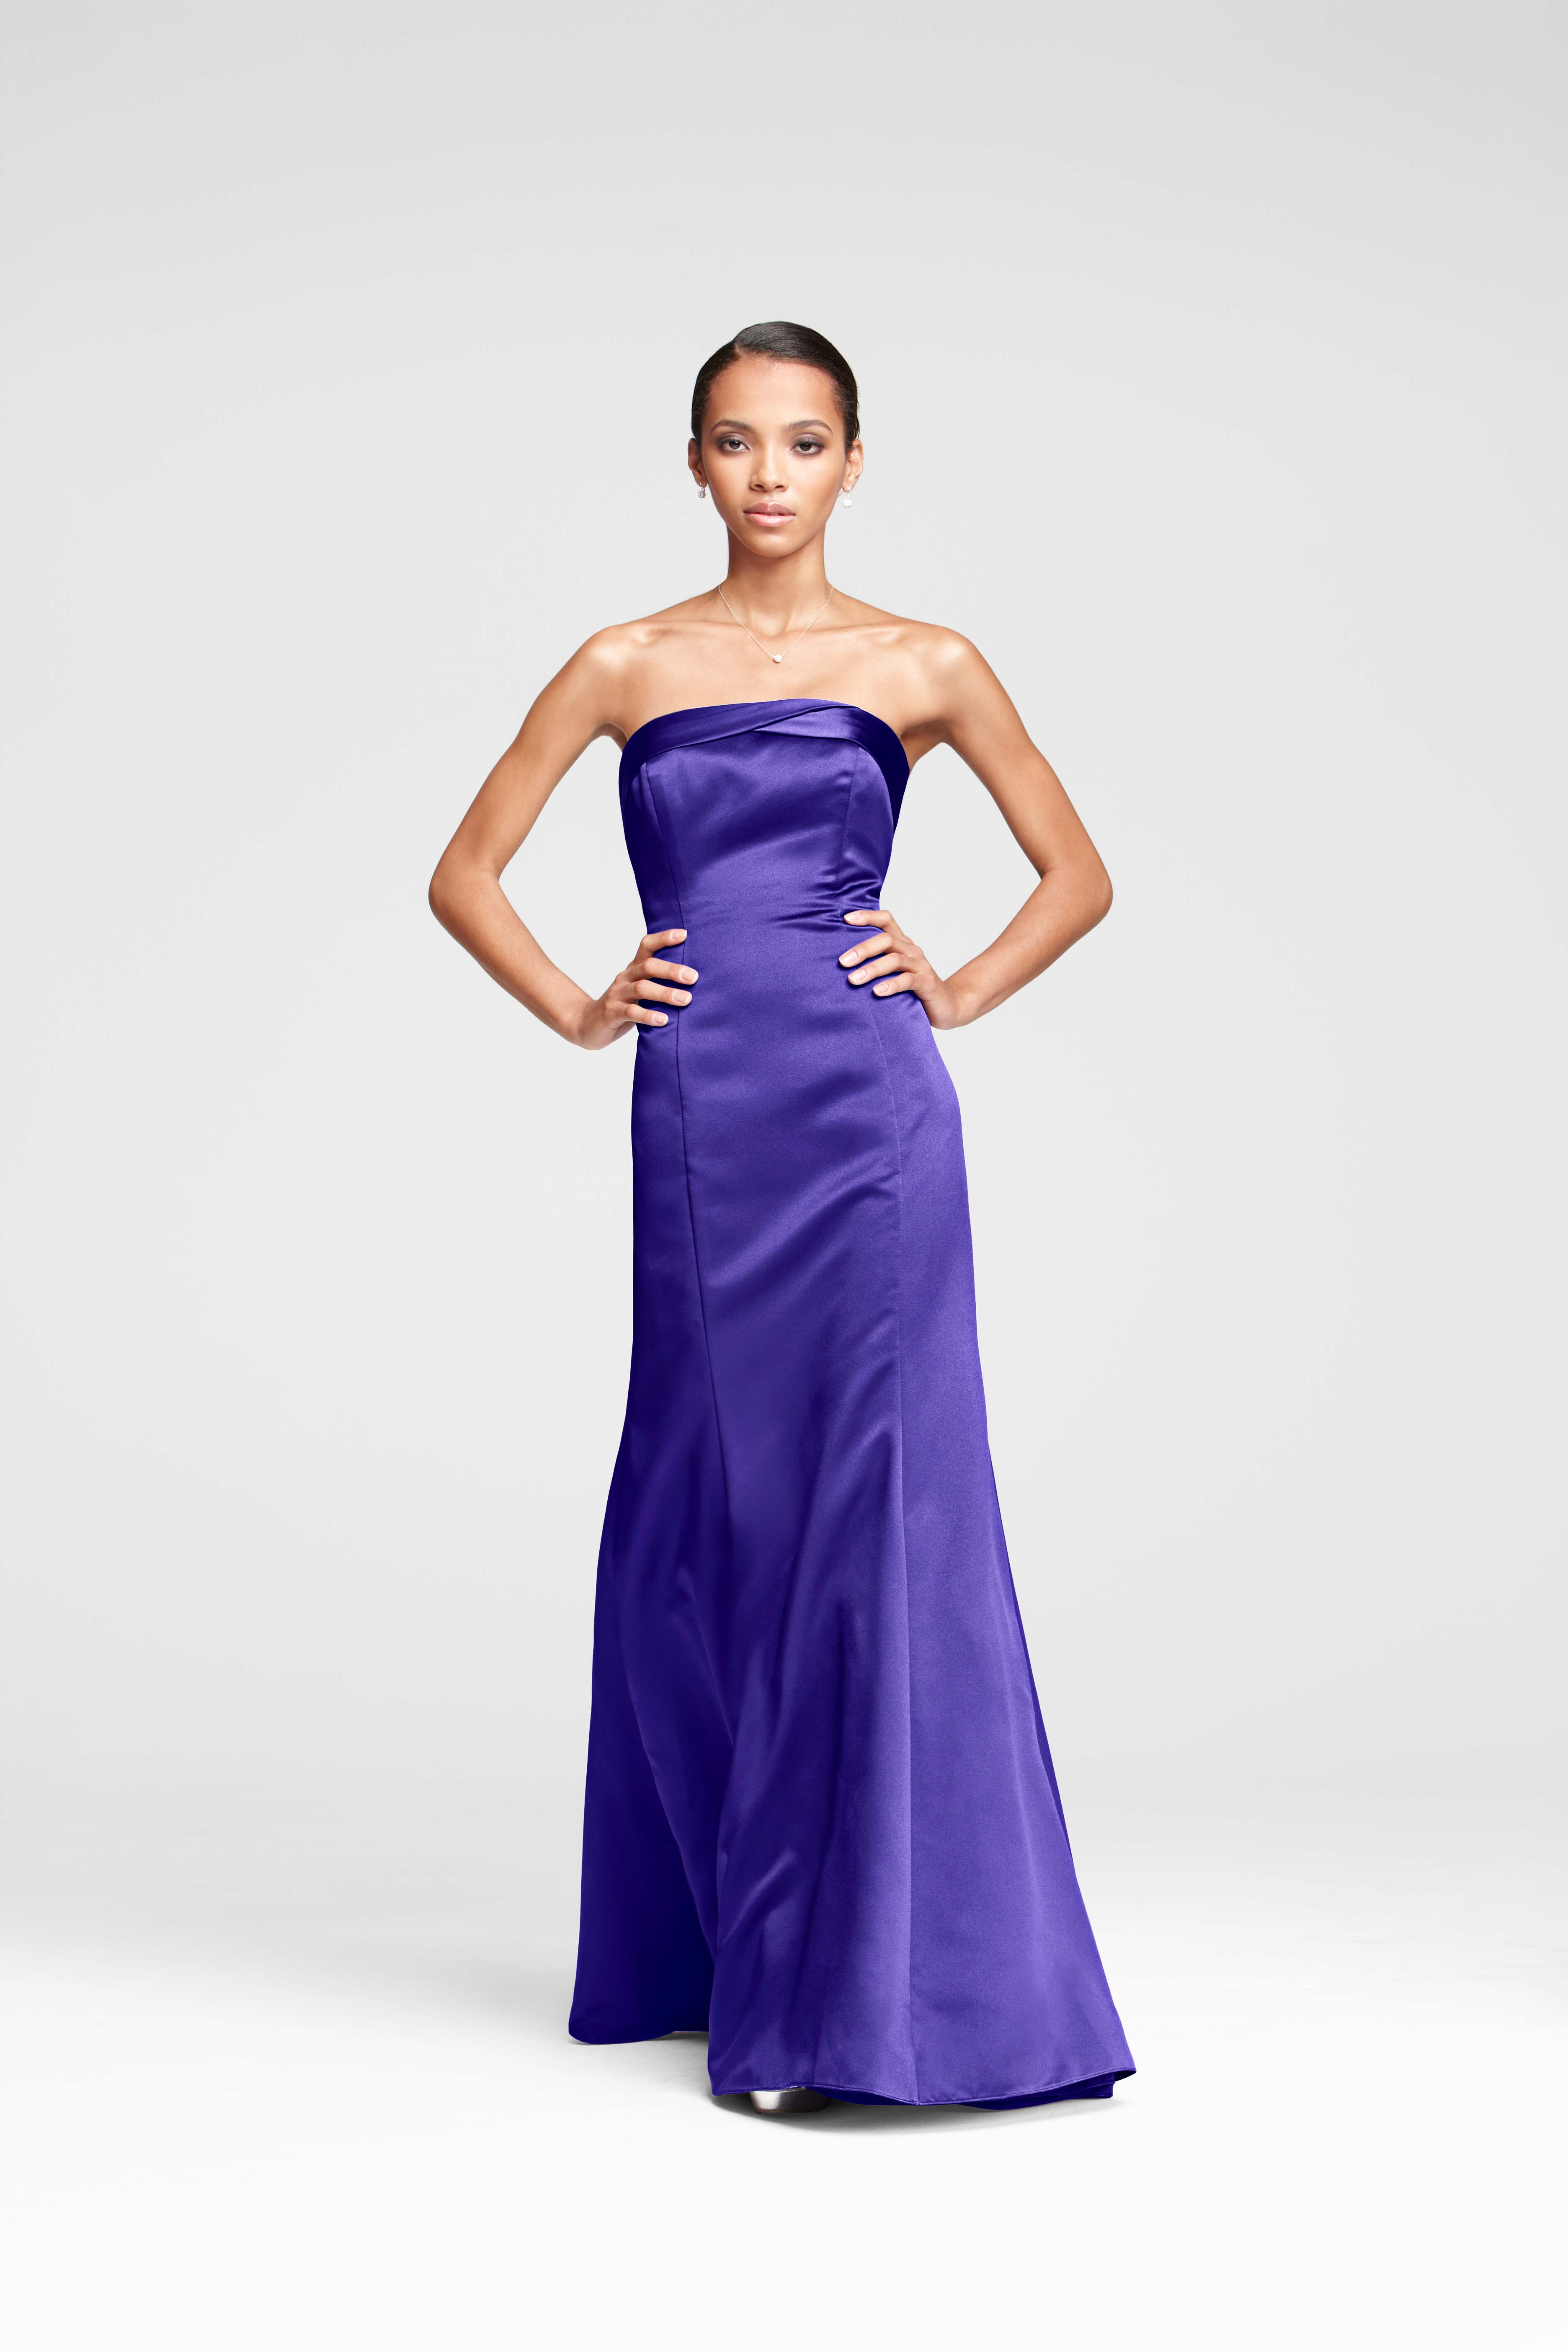 Oscars Dresses That Would Make Great Mother Of The Bride